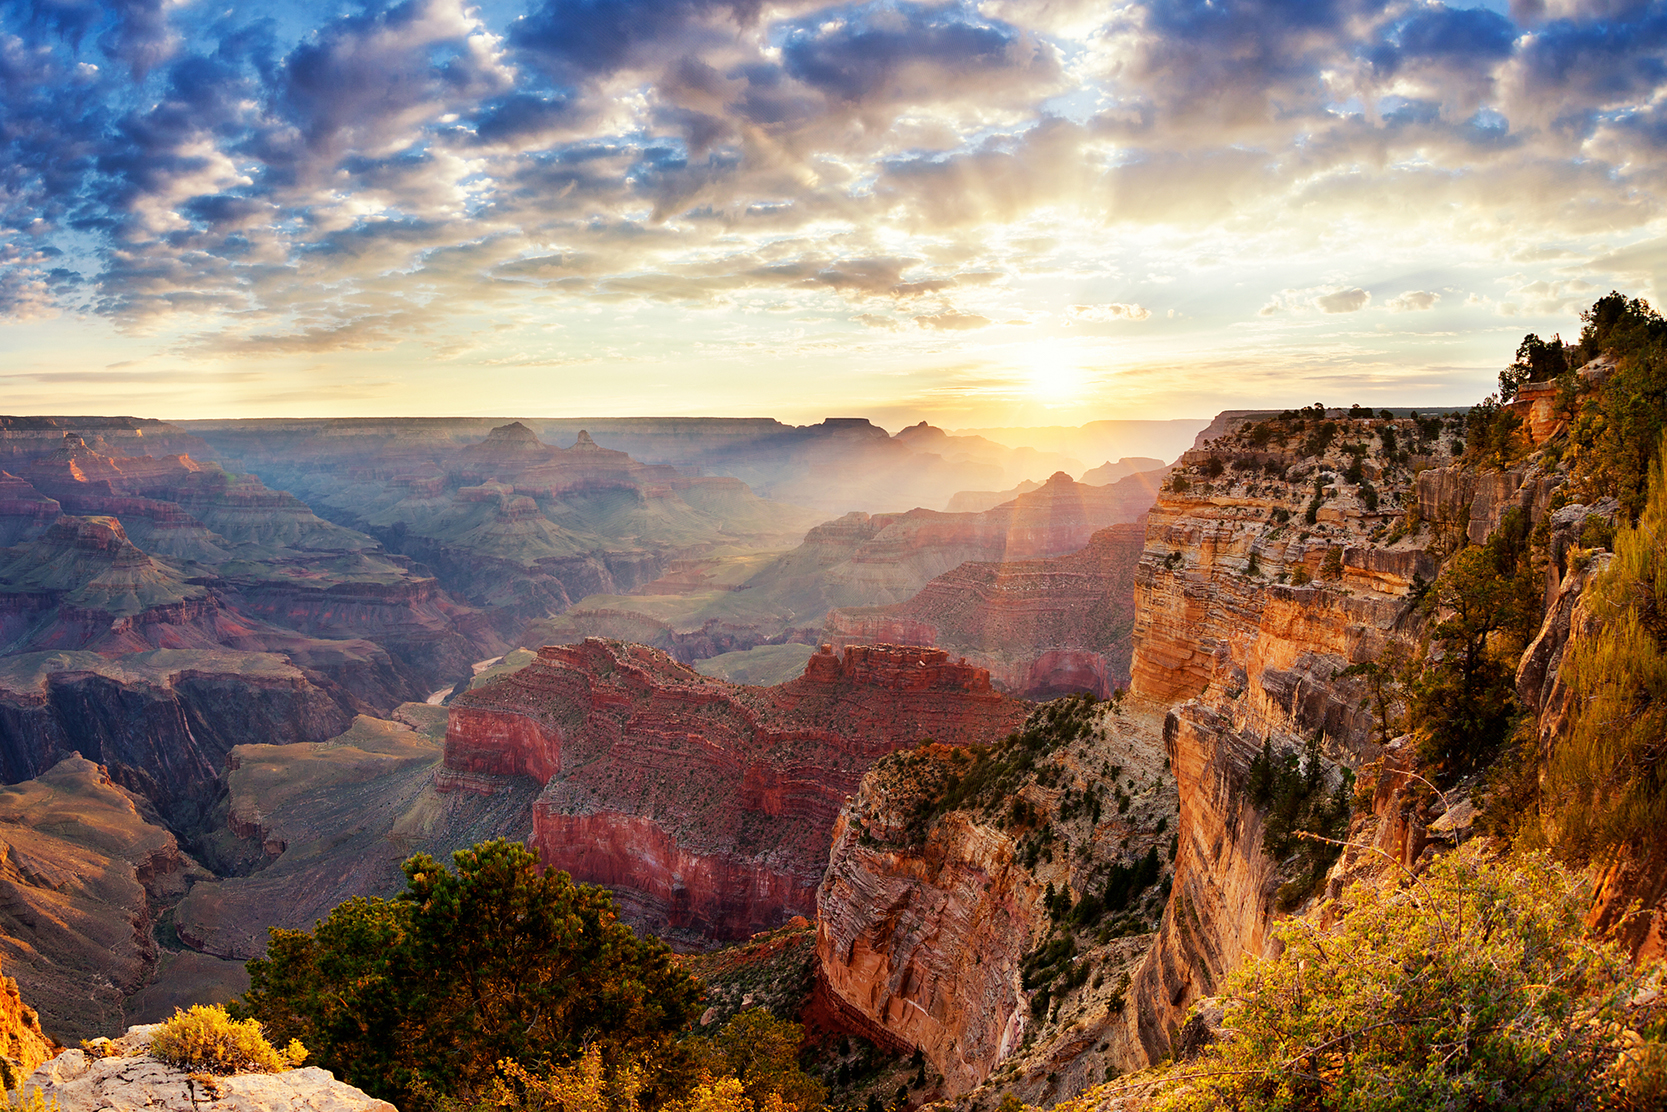 Take a Scenic Route to the Grand Canyon